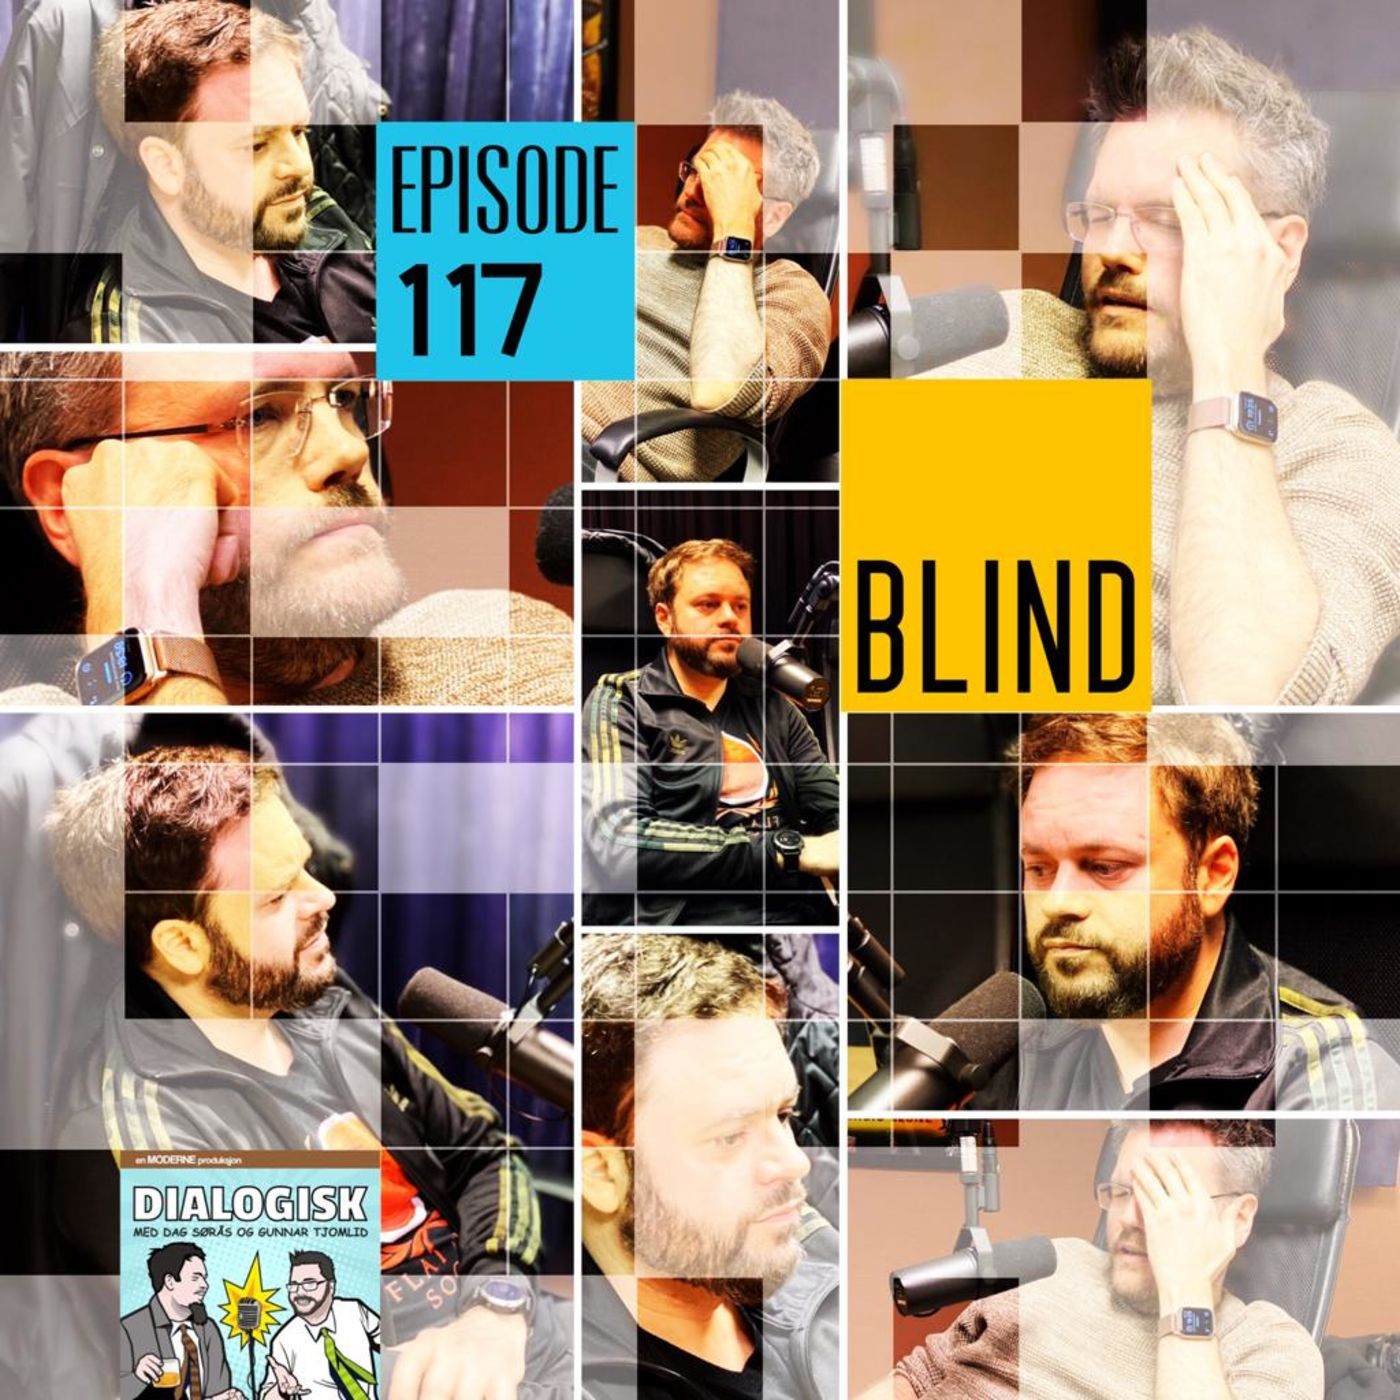 Episode 117: Blind